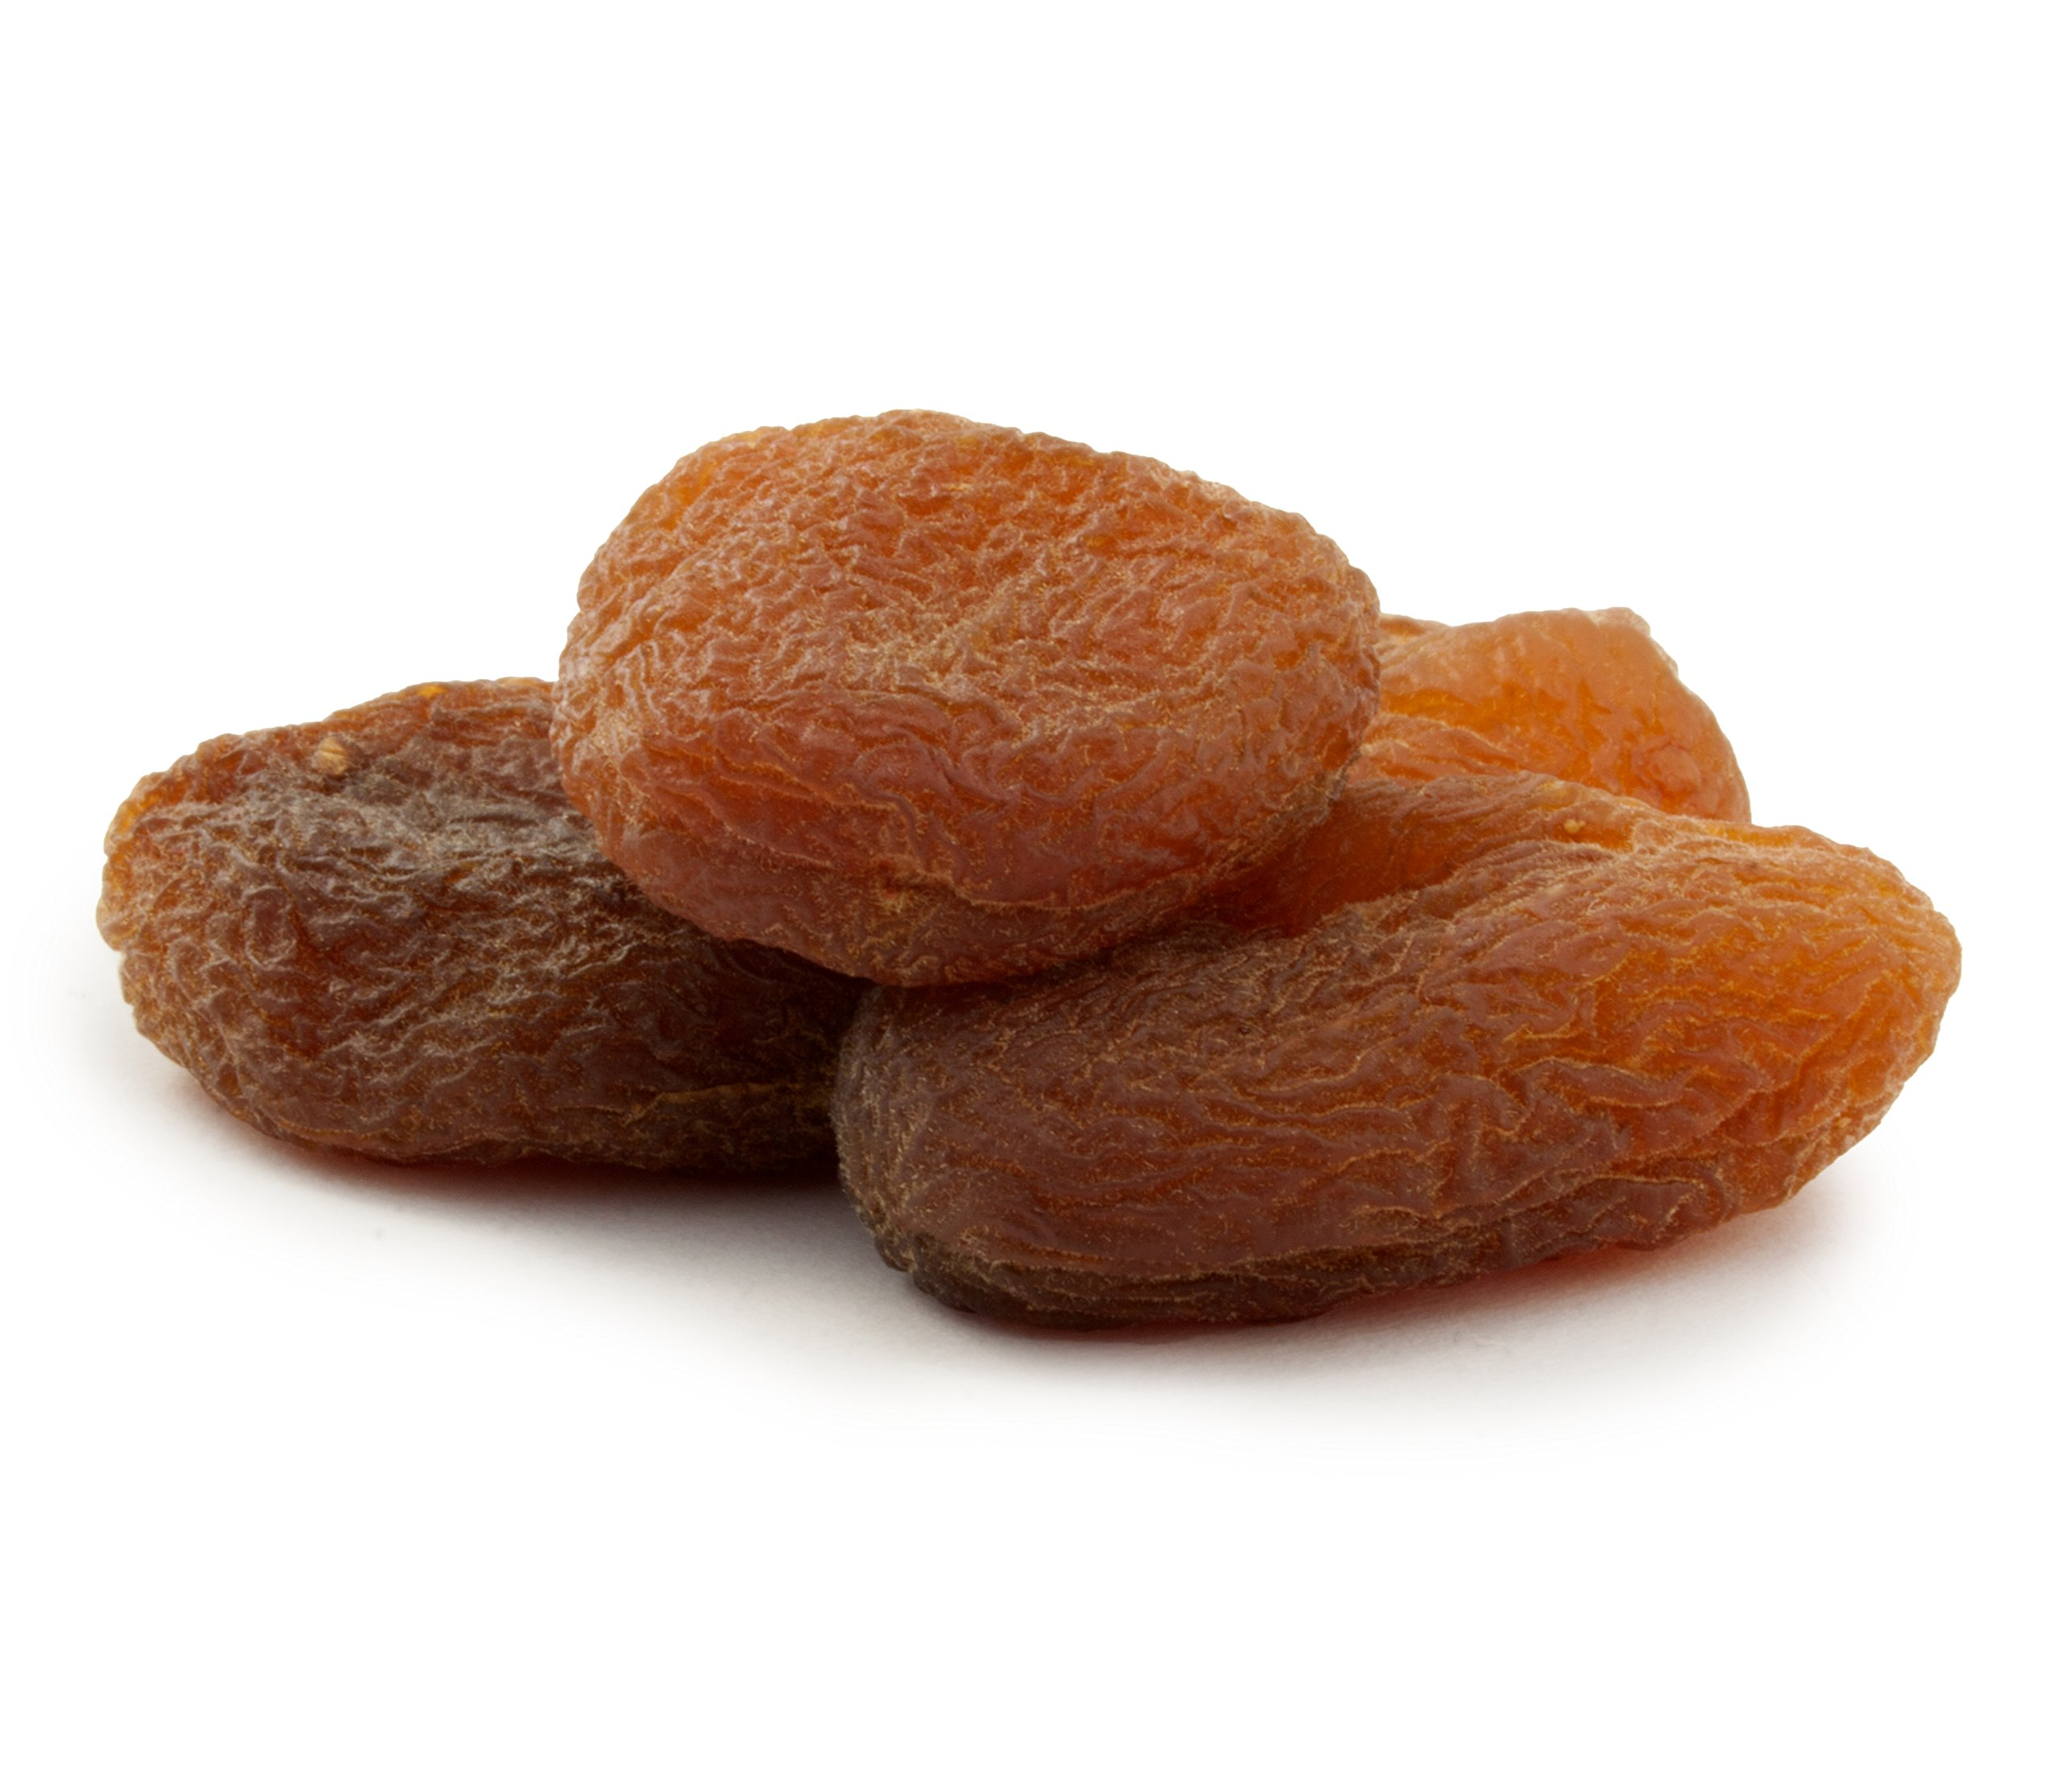 Premium Organic Dried Apricots | Raw, Non GMO, Vegan, Vegetarian, Unsulfured, Sun Dried Fruit, Turkish Apricots, No Sugar Added, Gift Box 100g by Avicenna BIO Food (Image #5)